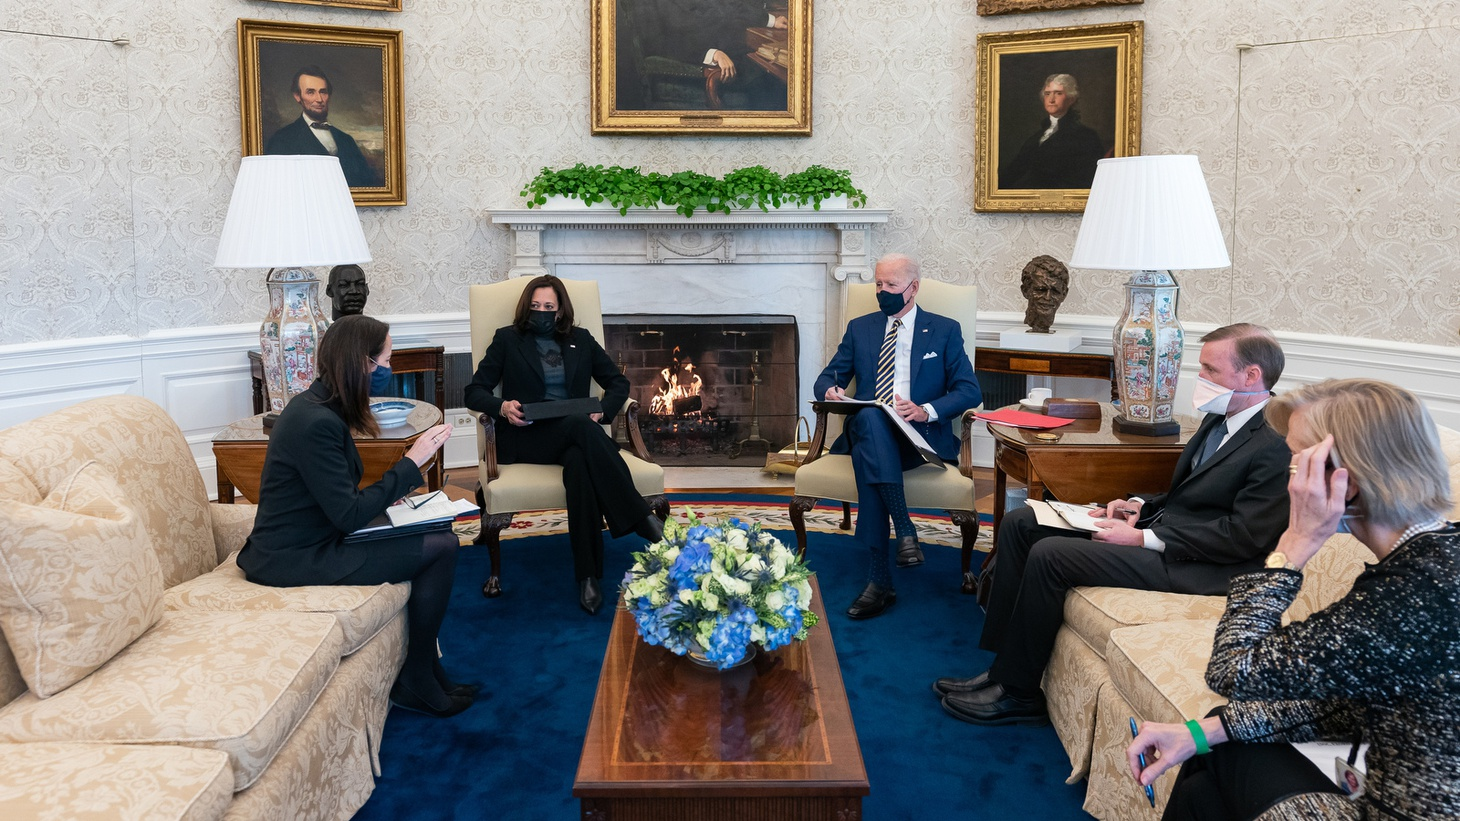 President Joe Biden and Vice President Kamala Harris receive a presidential daily briefing from the Director of National Intelligence Avril Haines, the Vice President's National Security Adviser Nancy McEldowney and National Security Adviser Jake Sullivan Friday, Jan. 22, 2021, in the Oval Office of the White House.